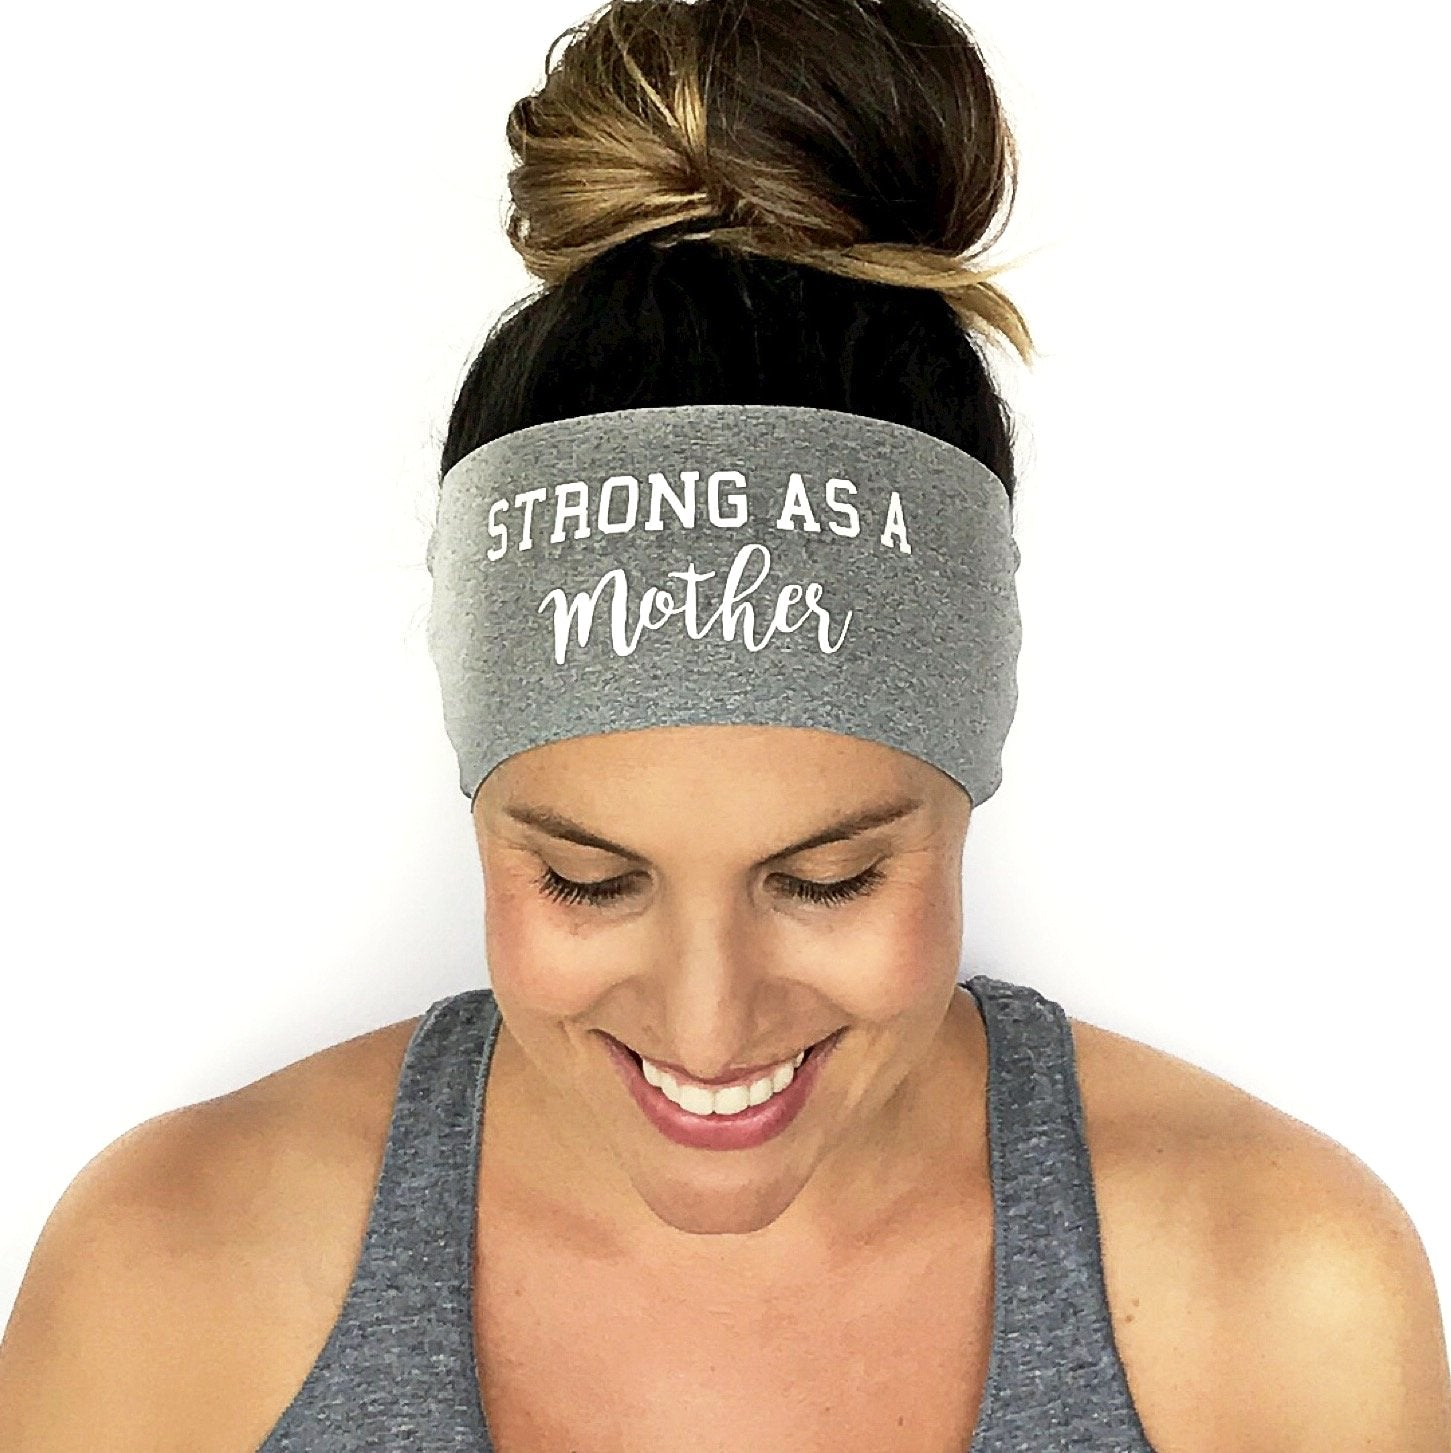 Strong As A Mother Scripted Headband